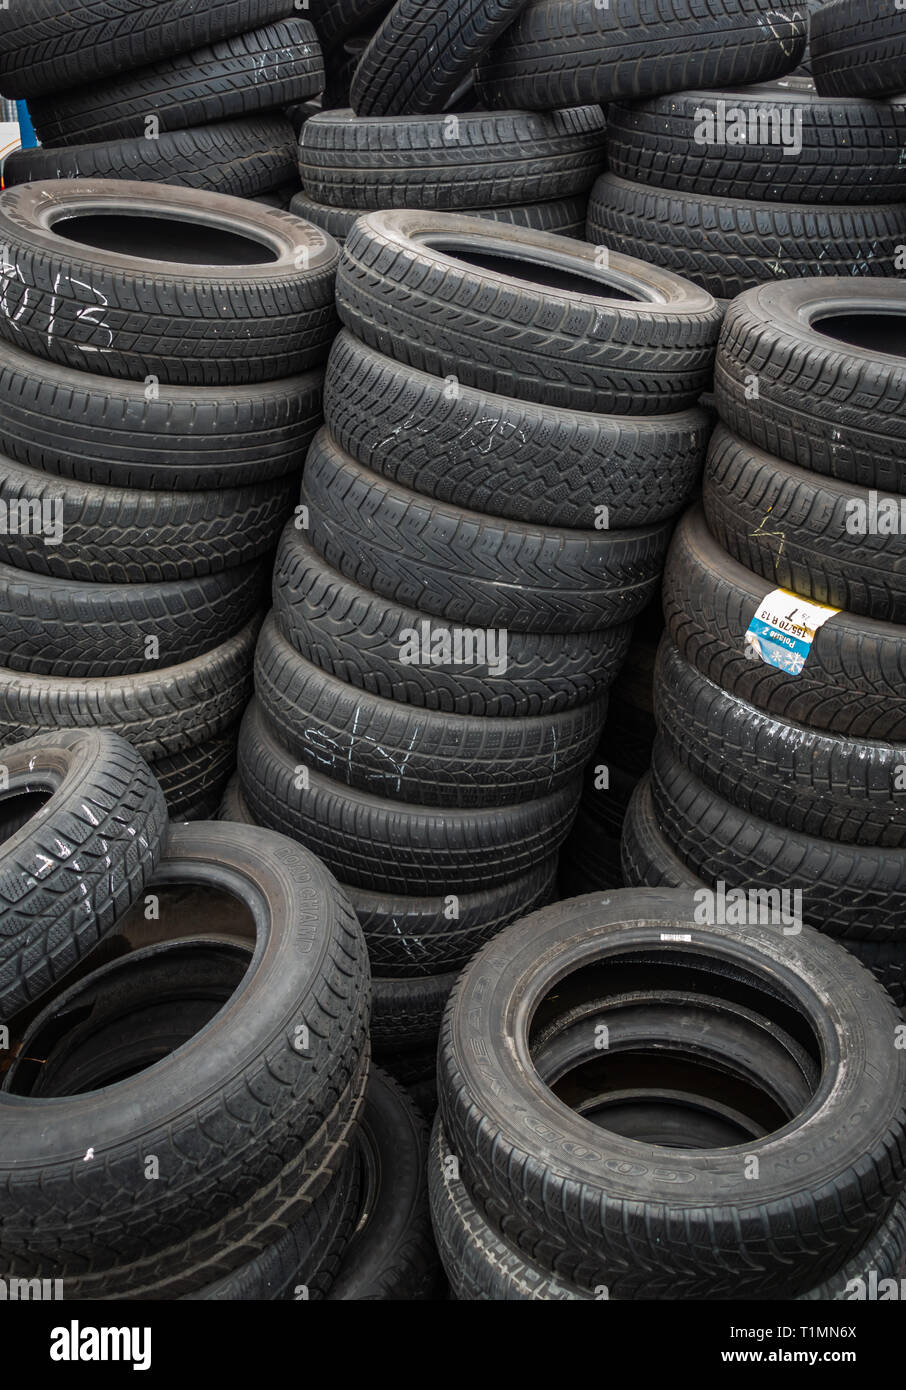 Rows of neatly stacked sed car tyres ready for resale in a distribution centre - Stock Image